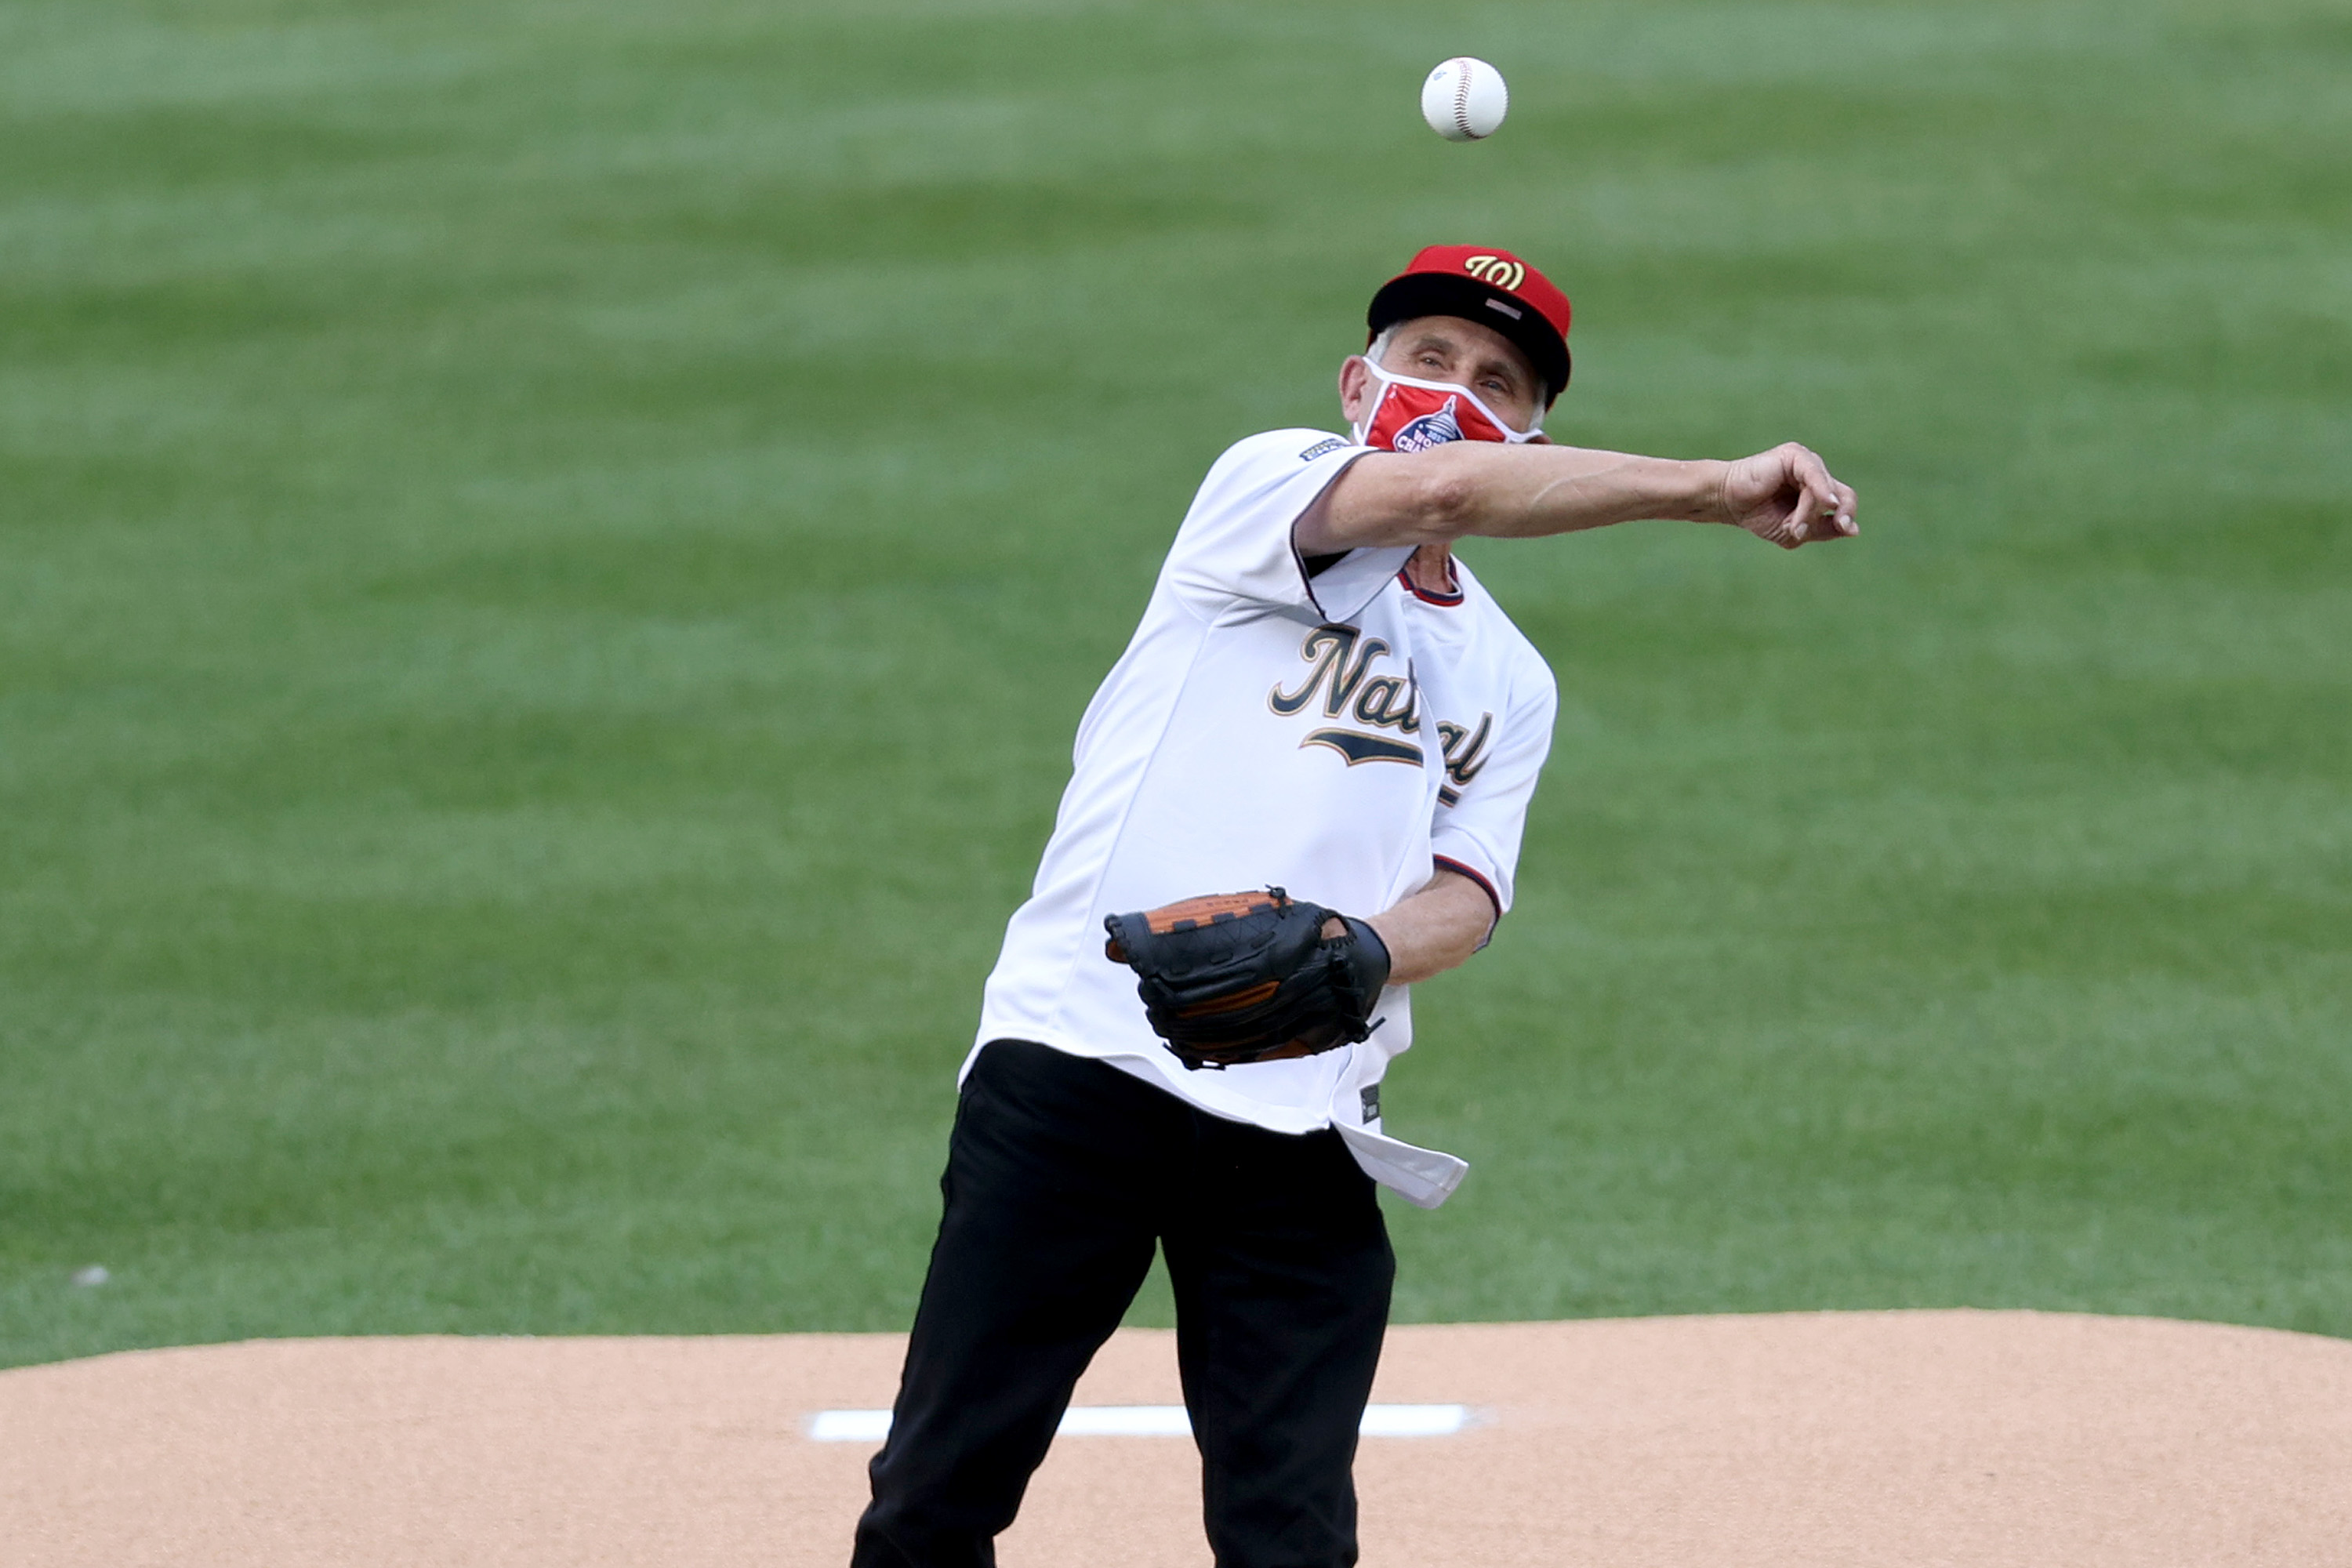 Dr. Anthony Fauci throws out the ceremonial first pitch prior to the game between the New York Yankees and the Washington Nationals at on July 23, 2020 in Washington, D.C.